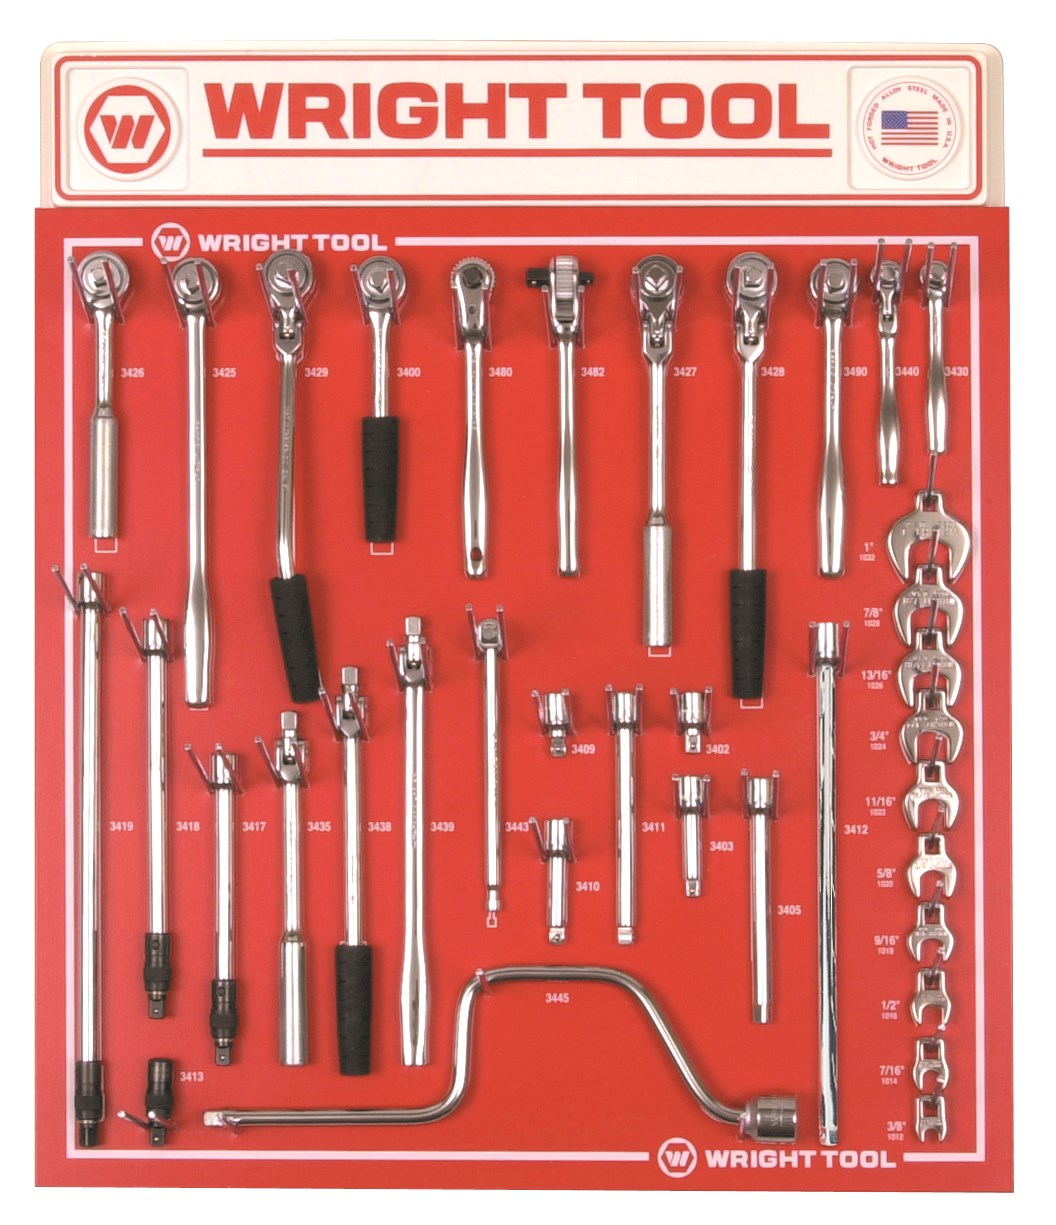 Wright Tool D983 34 Piece 3/8-inch Drive Handles & Attachments